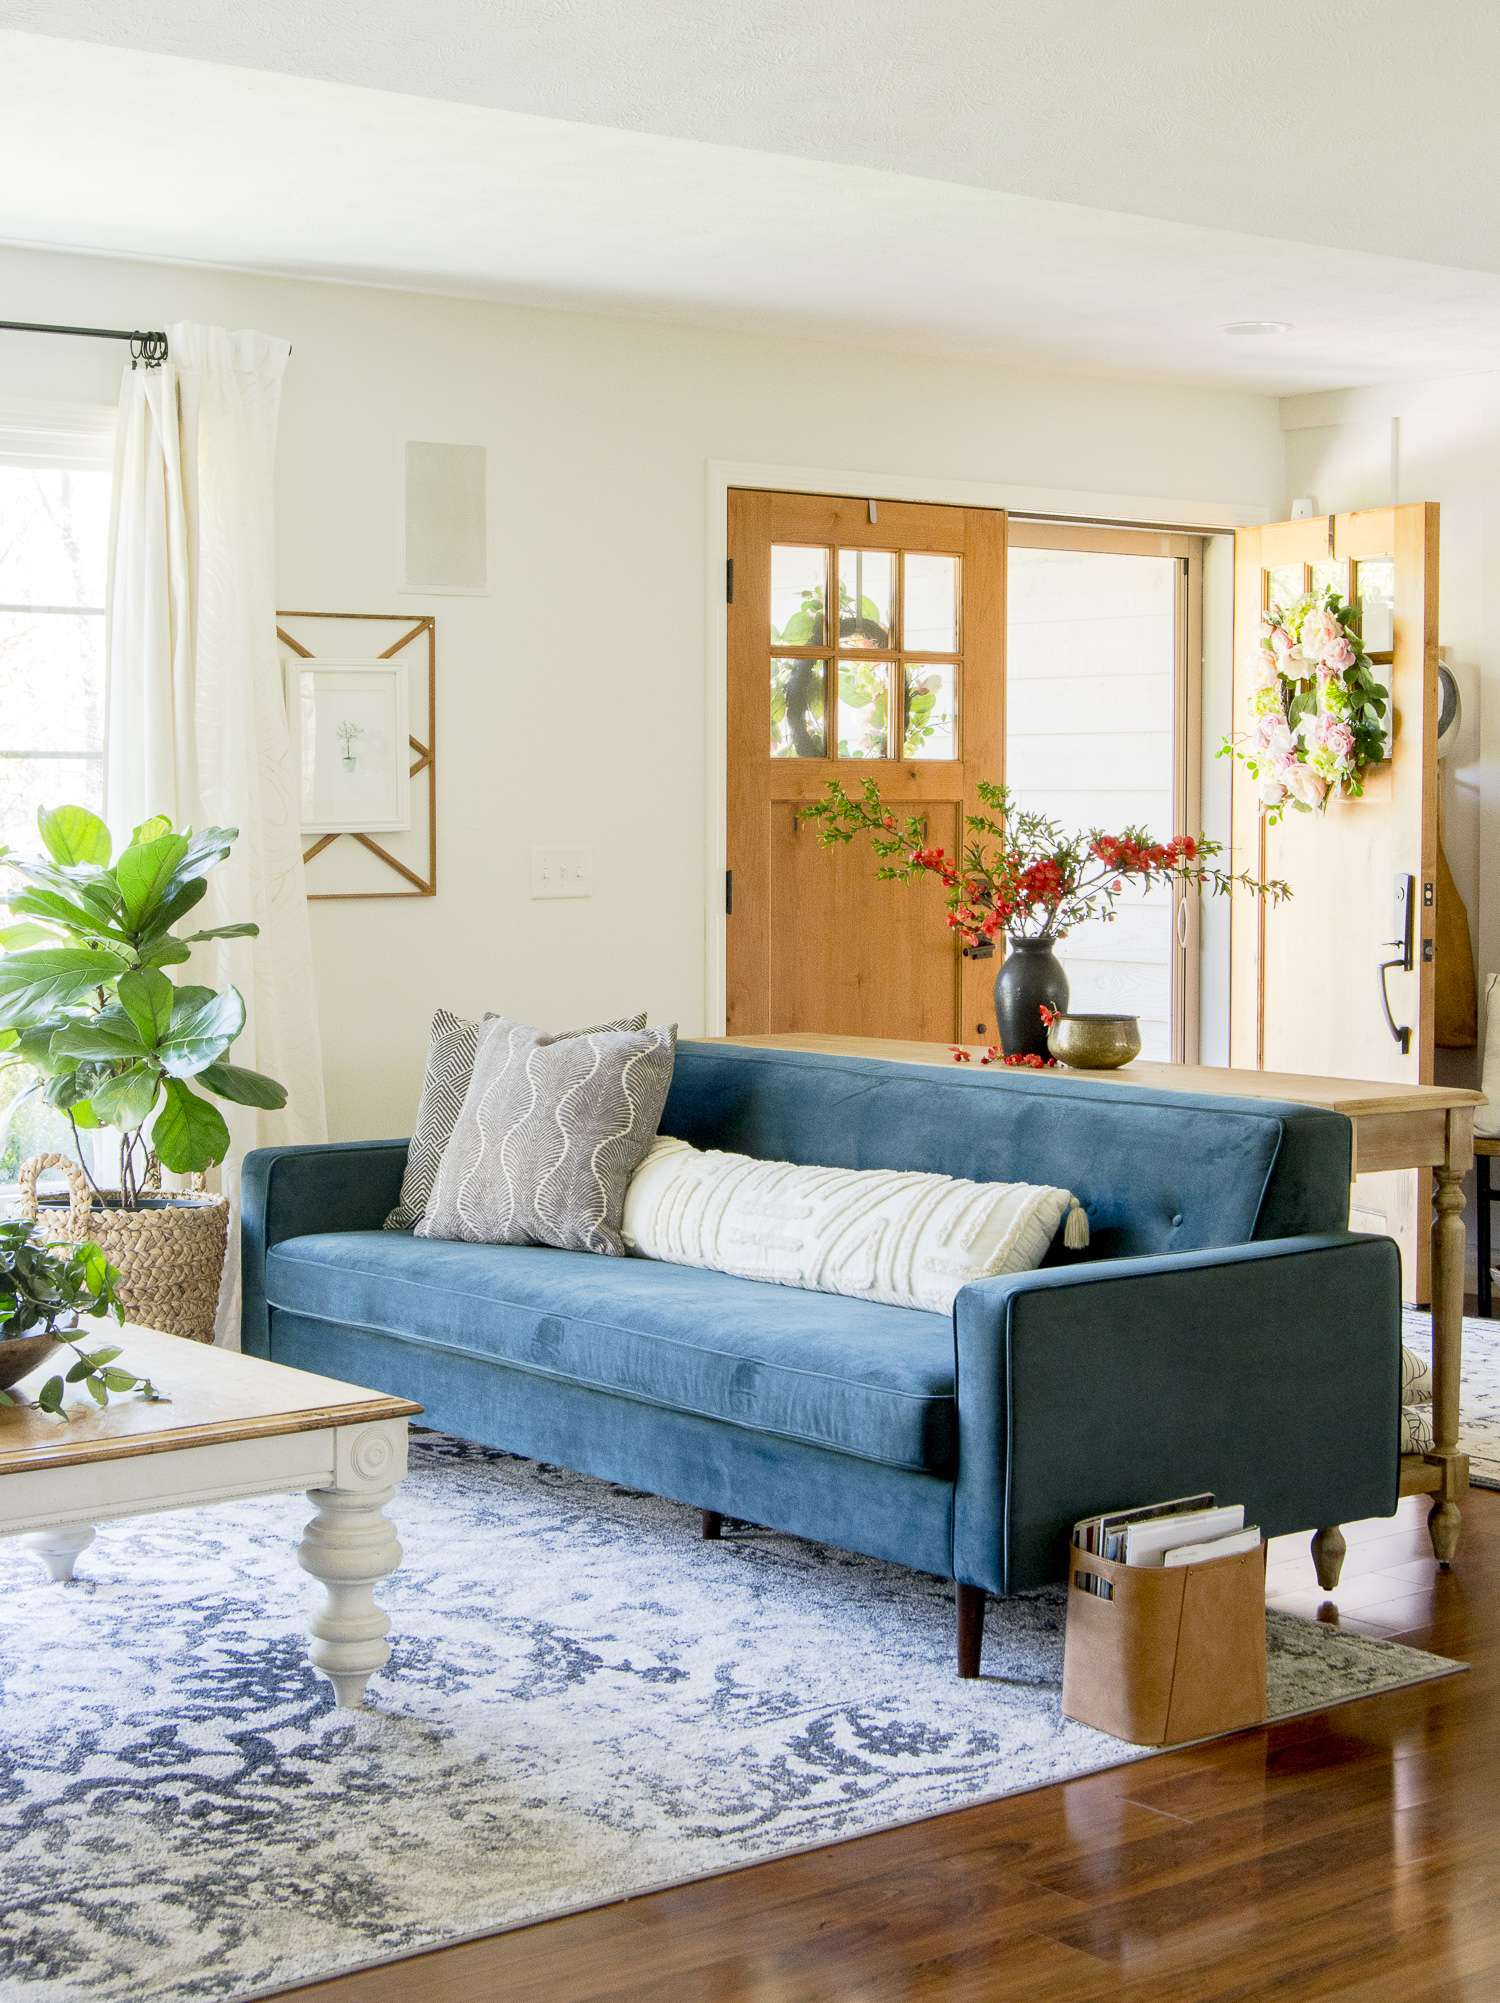 Velvet couch with an open entryway.